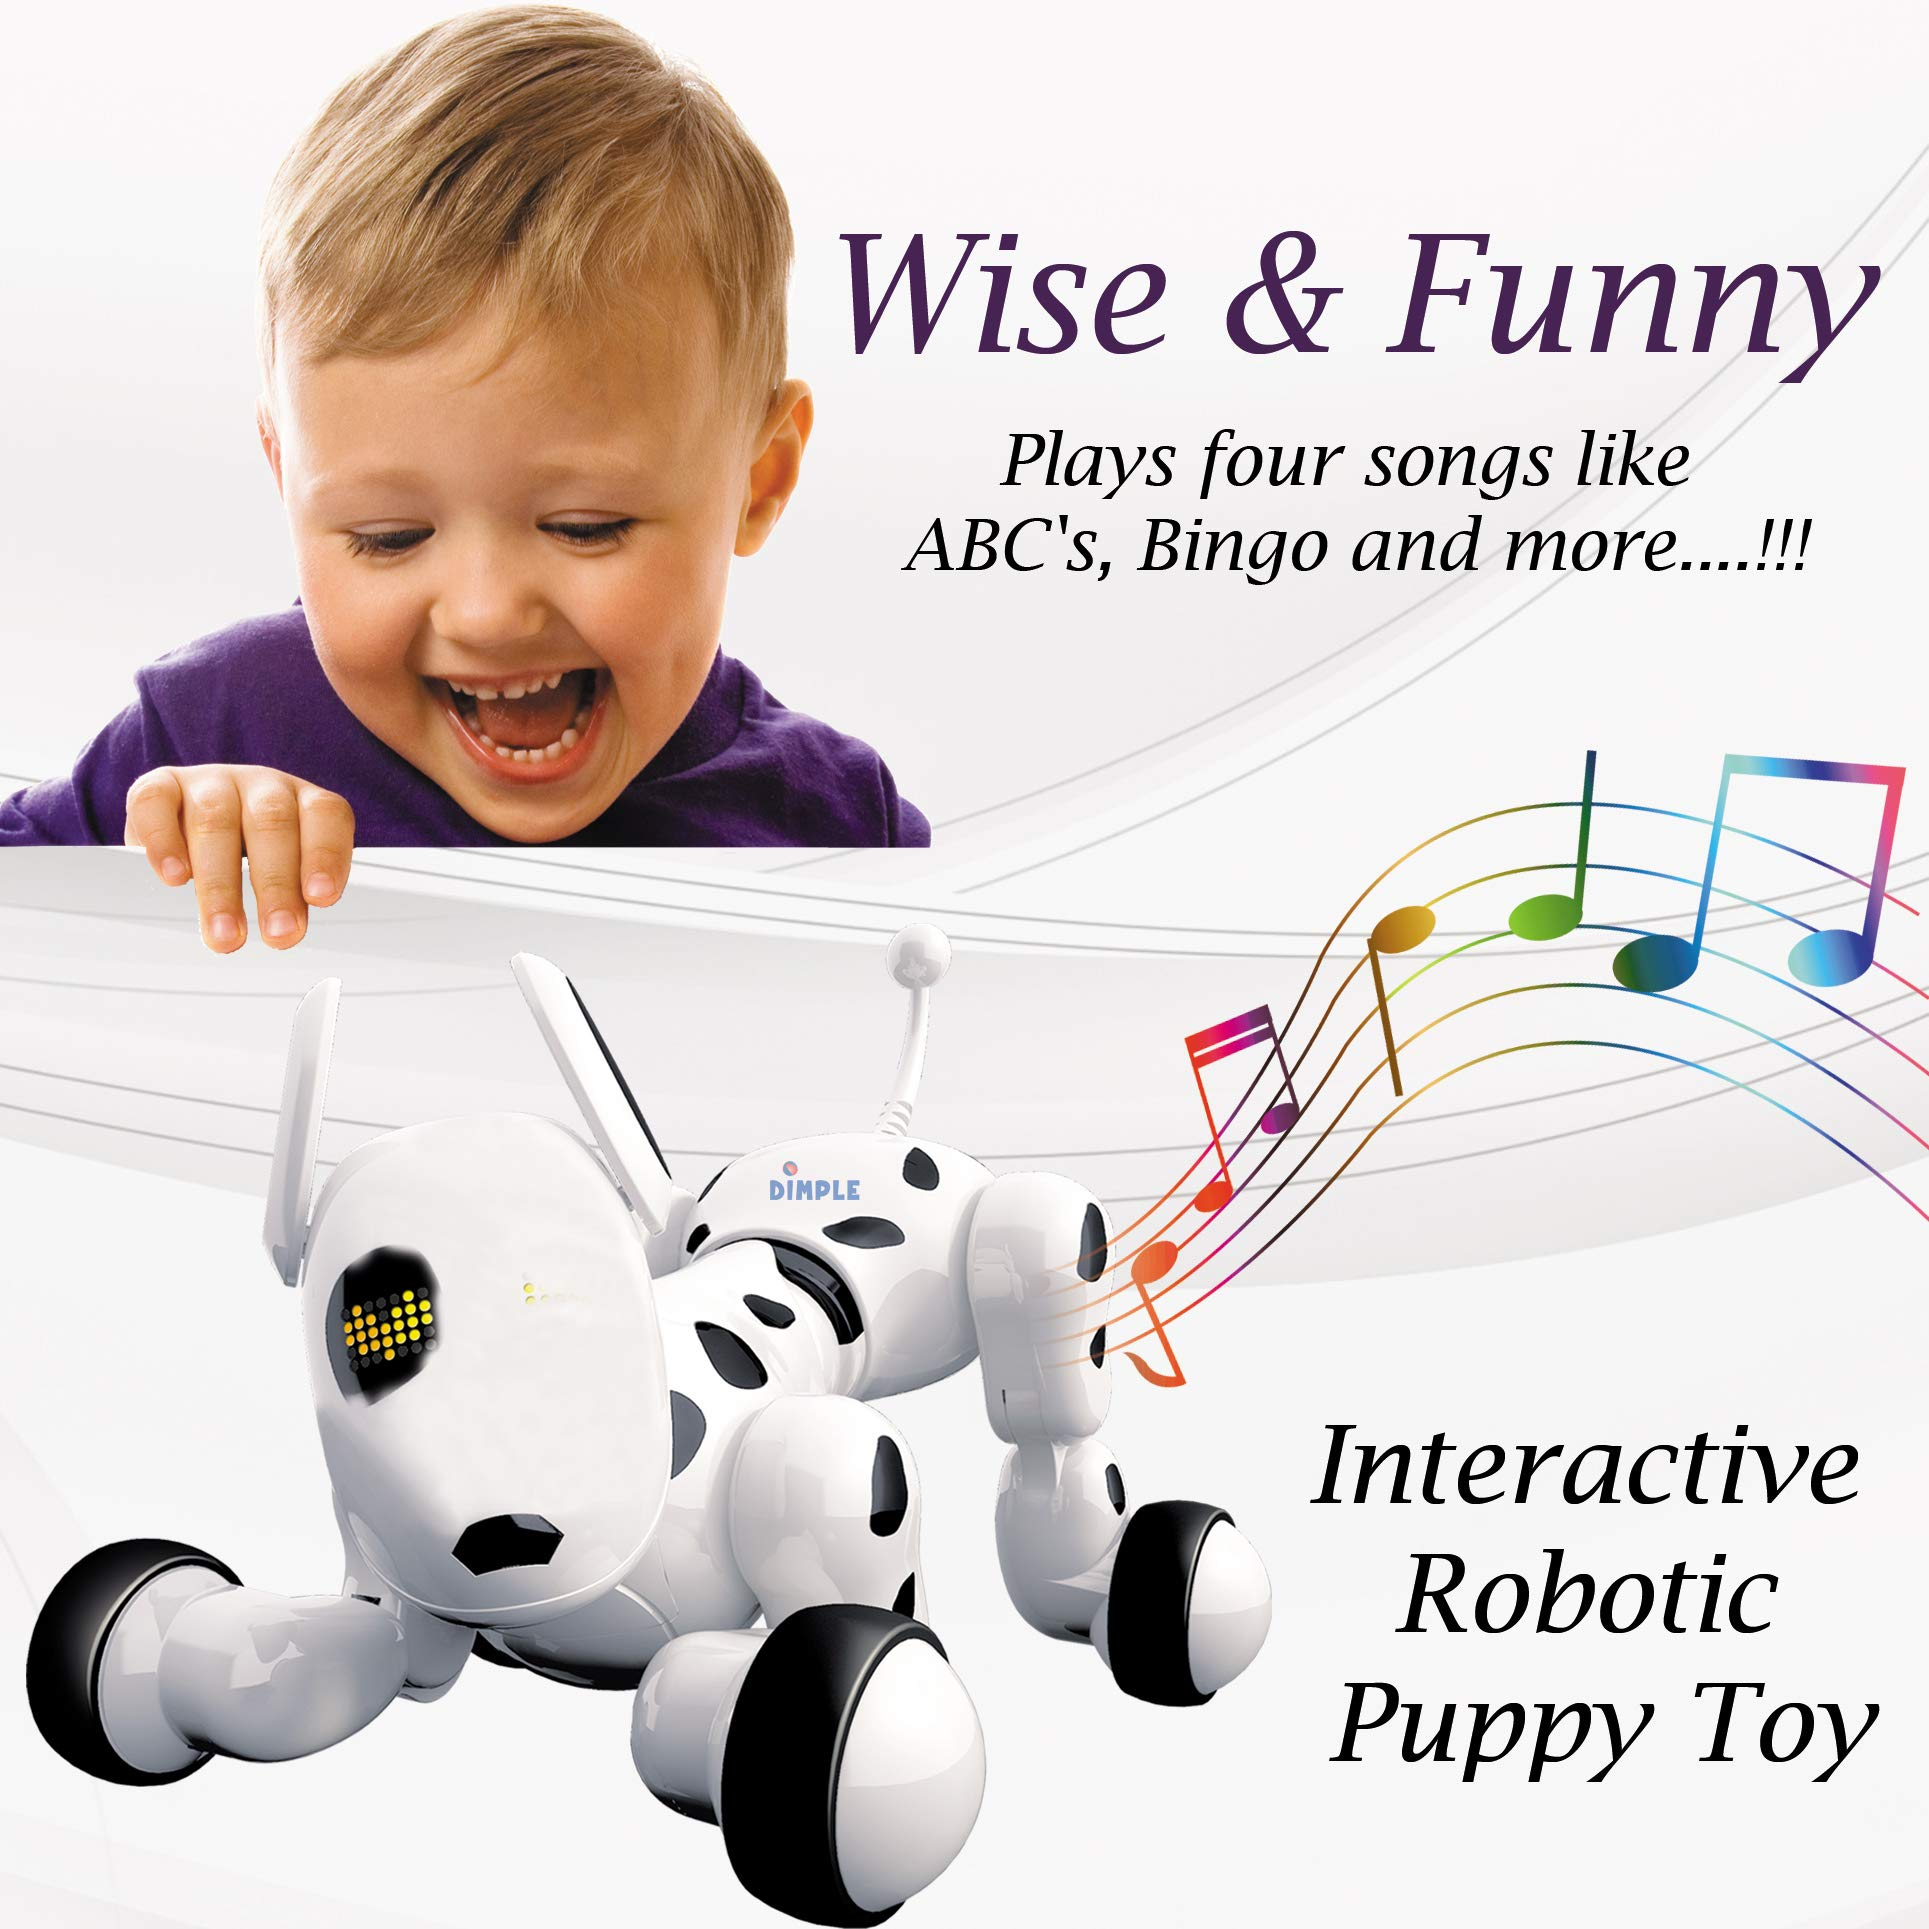 Dimple Interactive Robot Puppy With Wireless Remote Control RC Animal Dog Toy That Sings, Dances, Eye Mode, Speaks for Boys/Girls, Perfect Gift for Kids. by Dimple (Image #6)